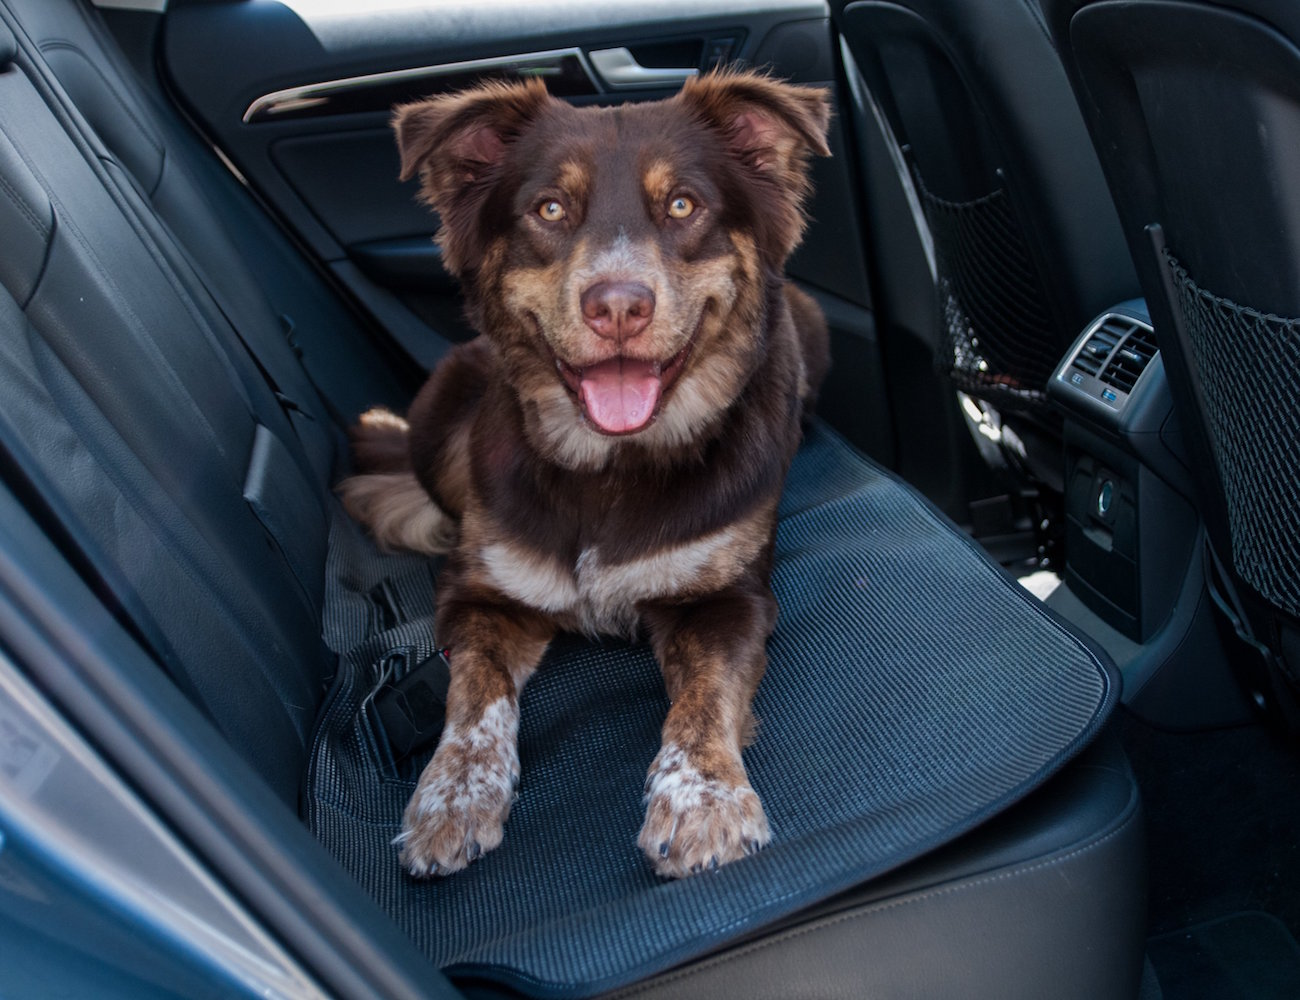 Stayjax+Stealth+Seat+Mat+For+Your+Dog